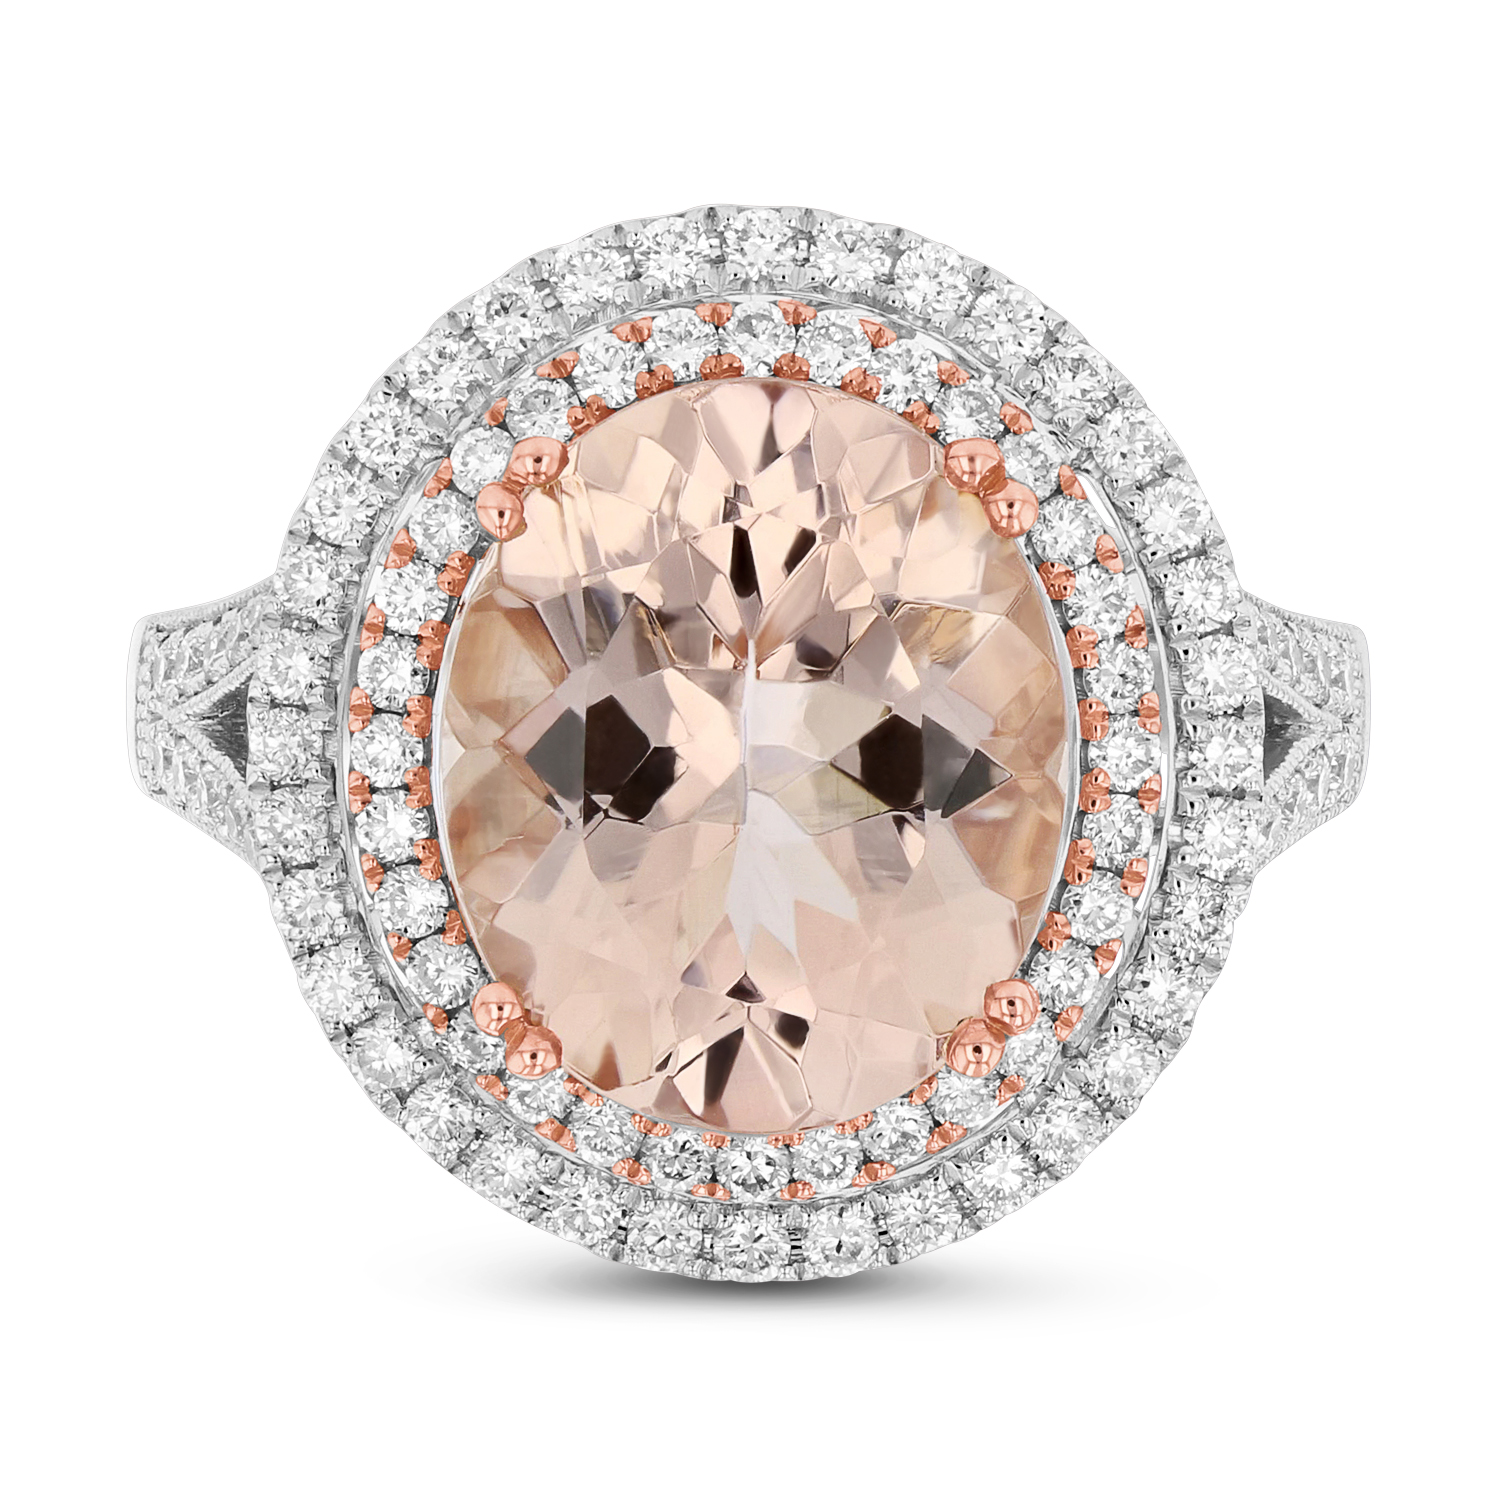 View Diamond and Morganite Ring in 14k Two Tone Gold